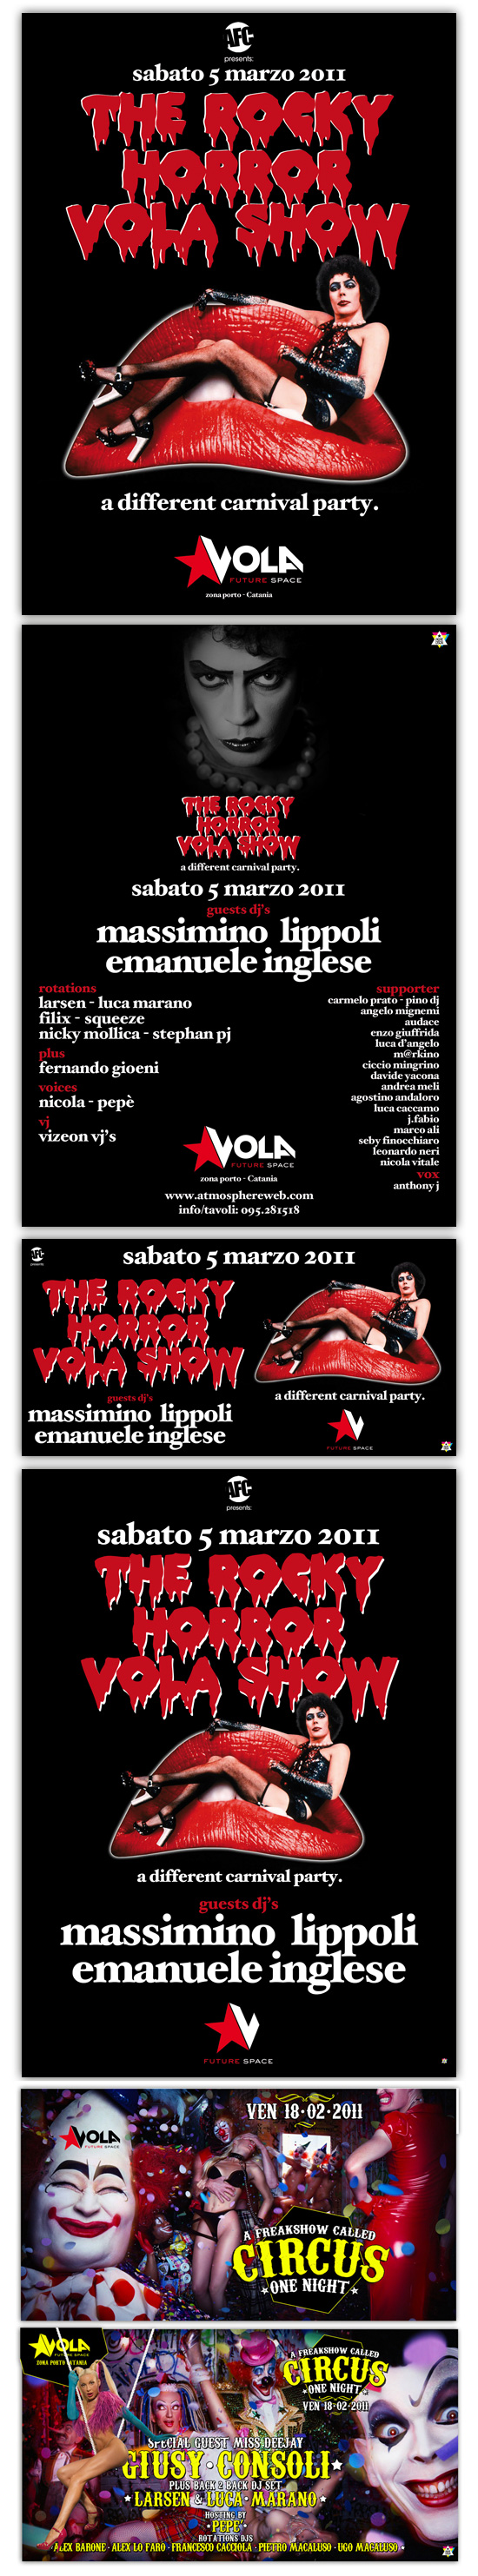 Vola – Catania (IT)